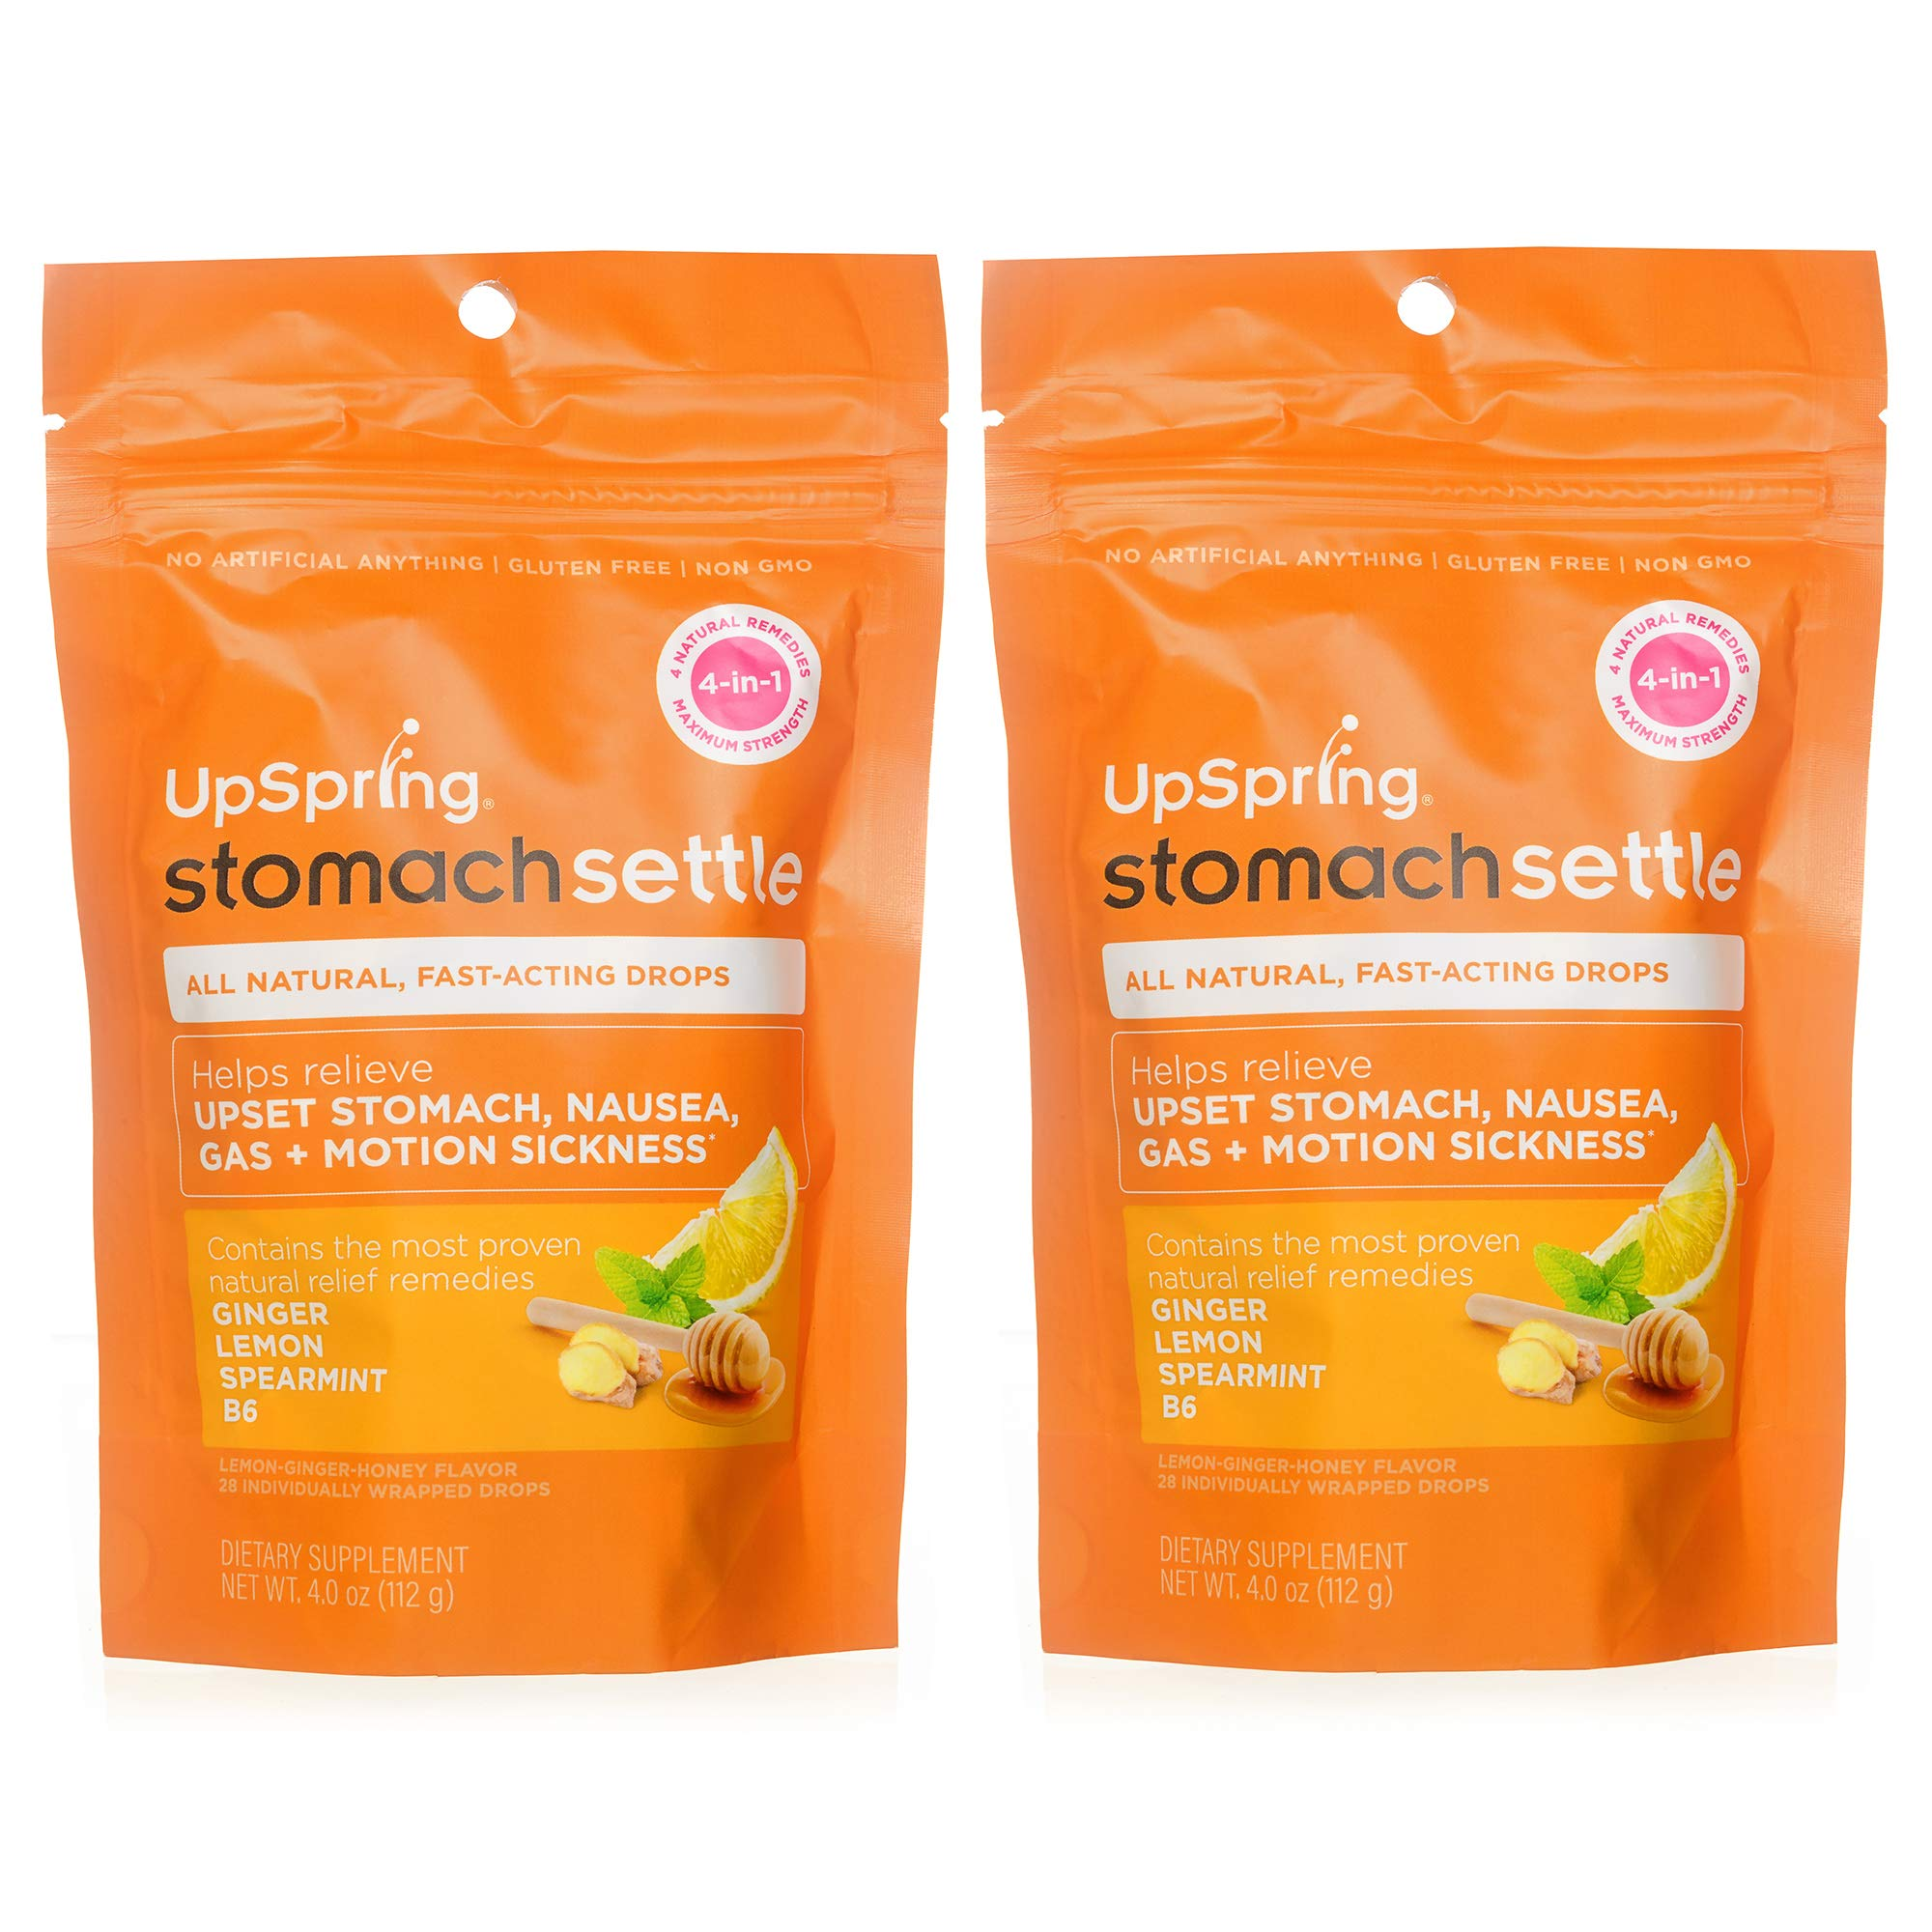 UpSpring Stomach Settle Drops for Nausea, Gas, Bloating, Morning Sickness and Motion Sickness Relief, 28 Count Individually Wrapped Drops for Tummy with Ginger, Lemon, Spearmint, Honey and B6, 2 Pack by UpSpring